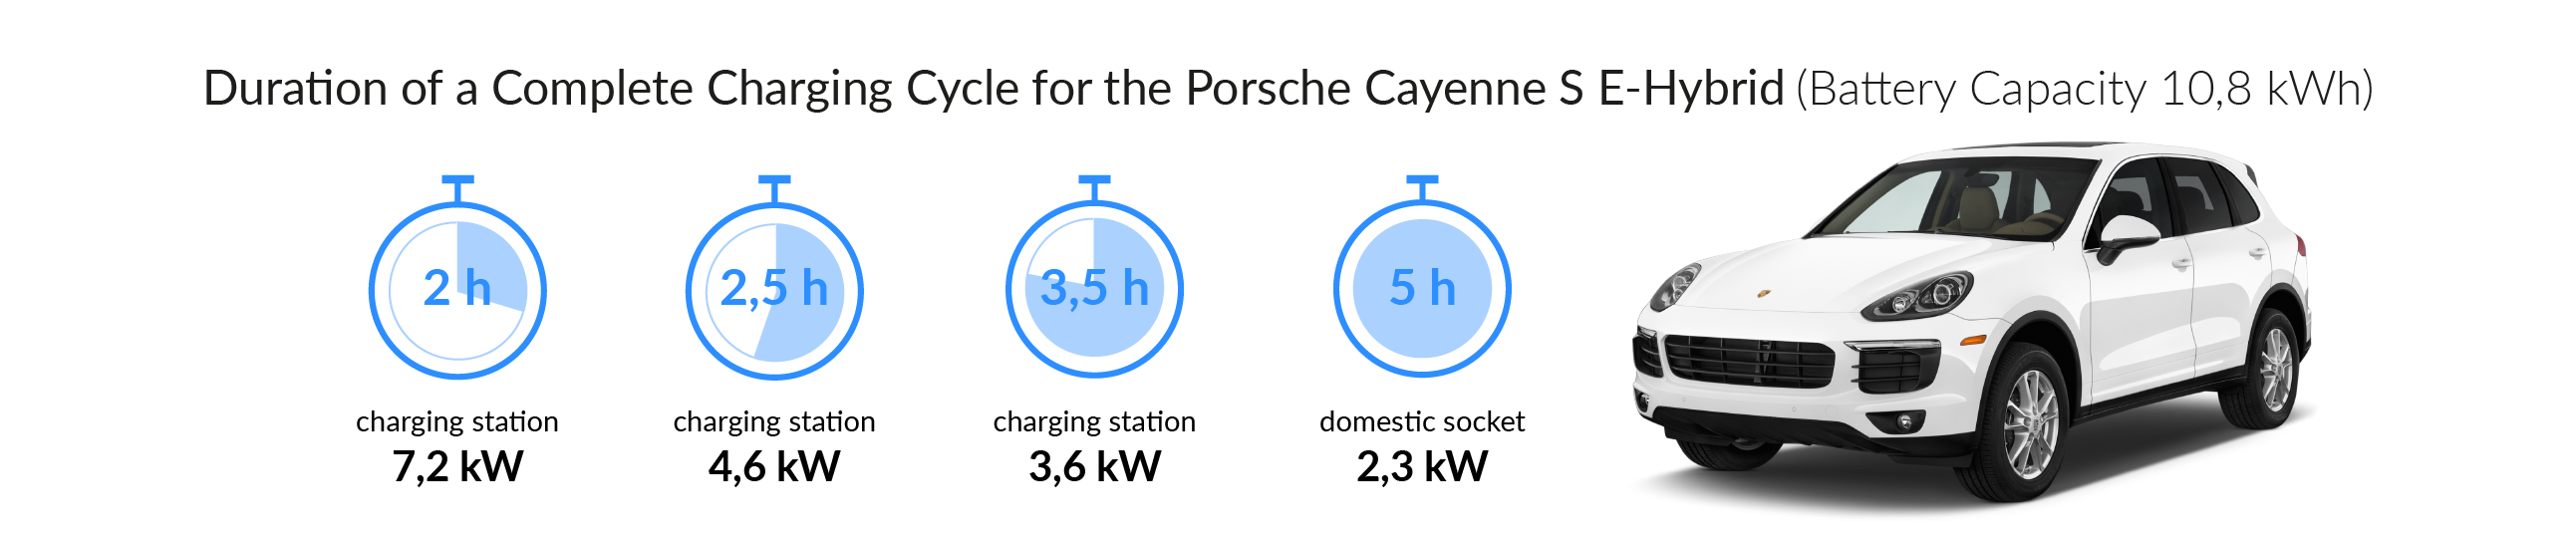 Charging time for your Porsche Cayenne S E-Hybrid